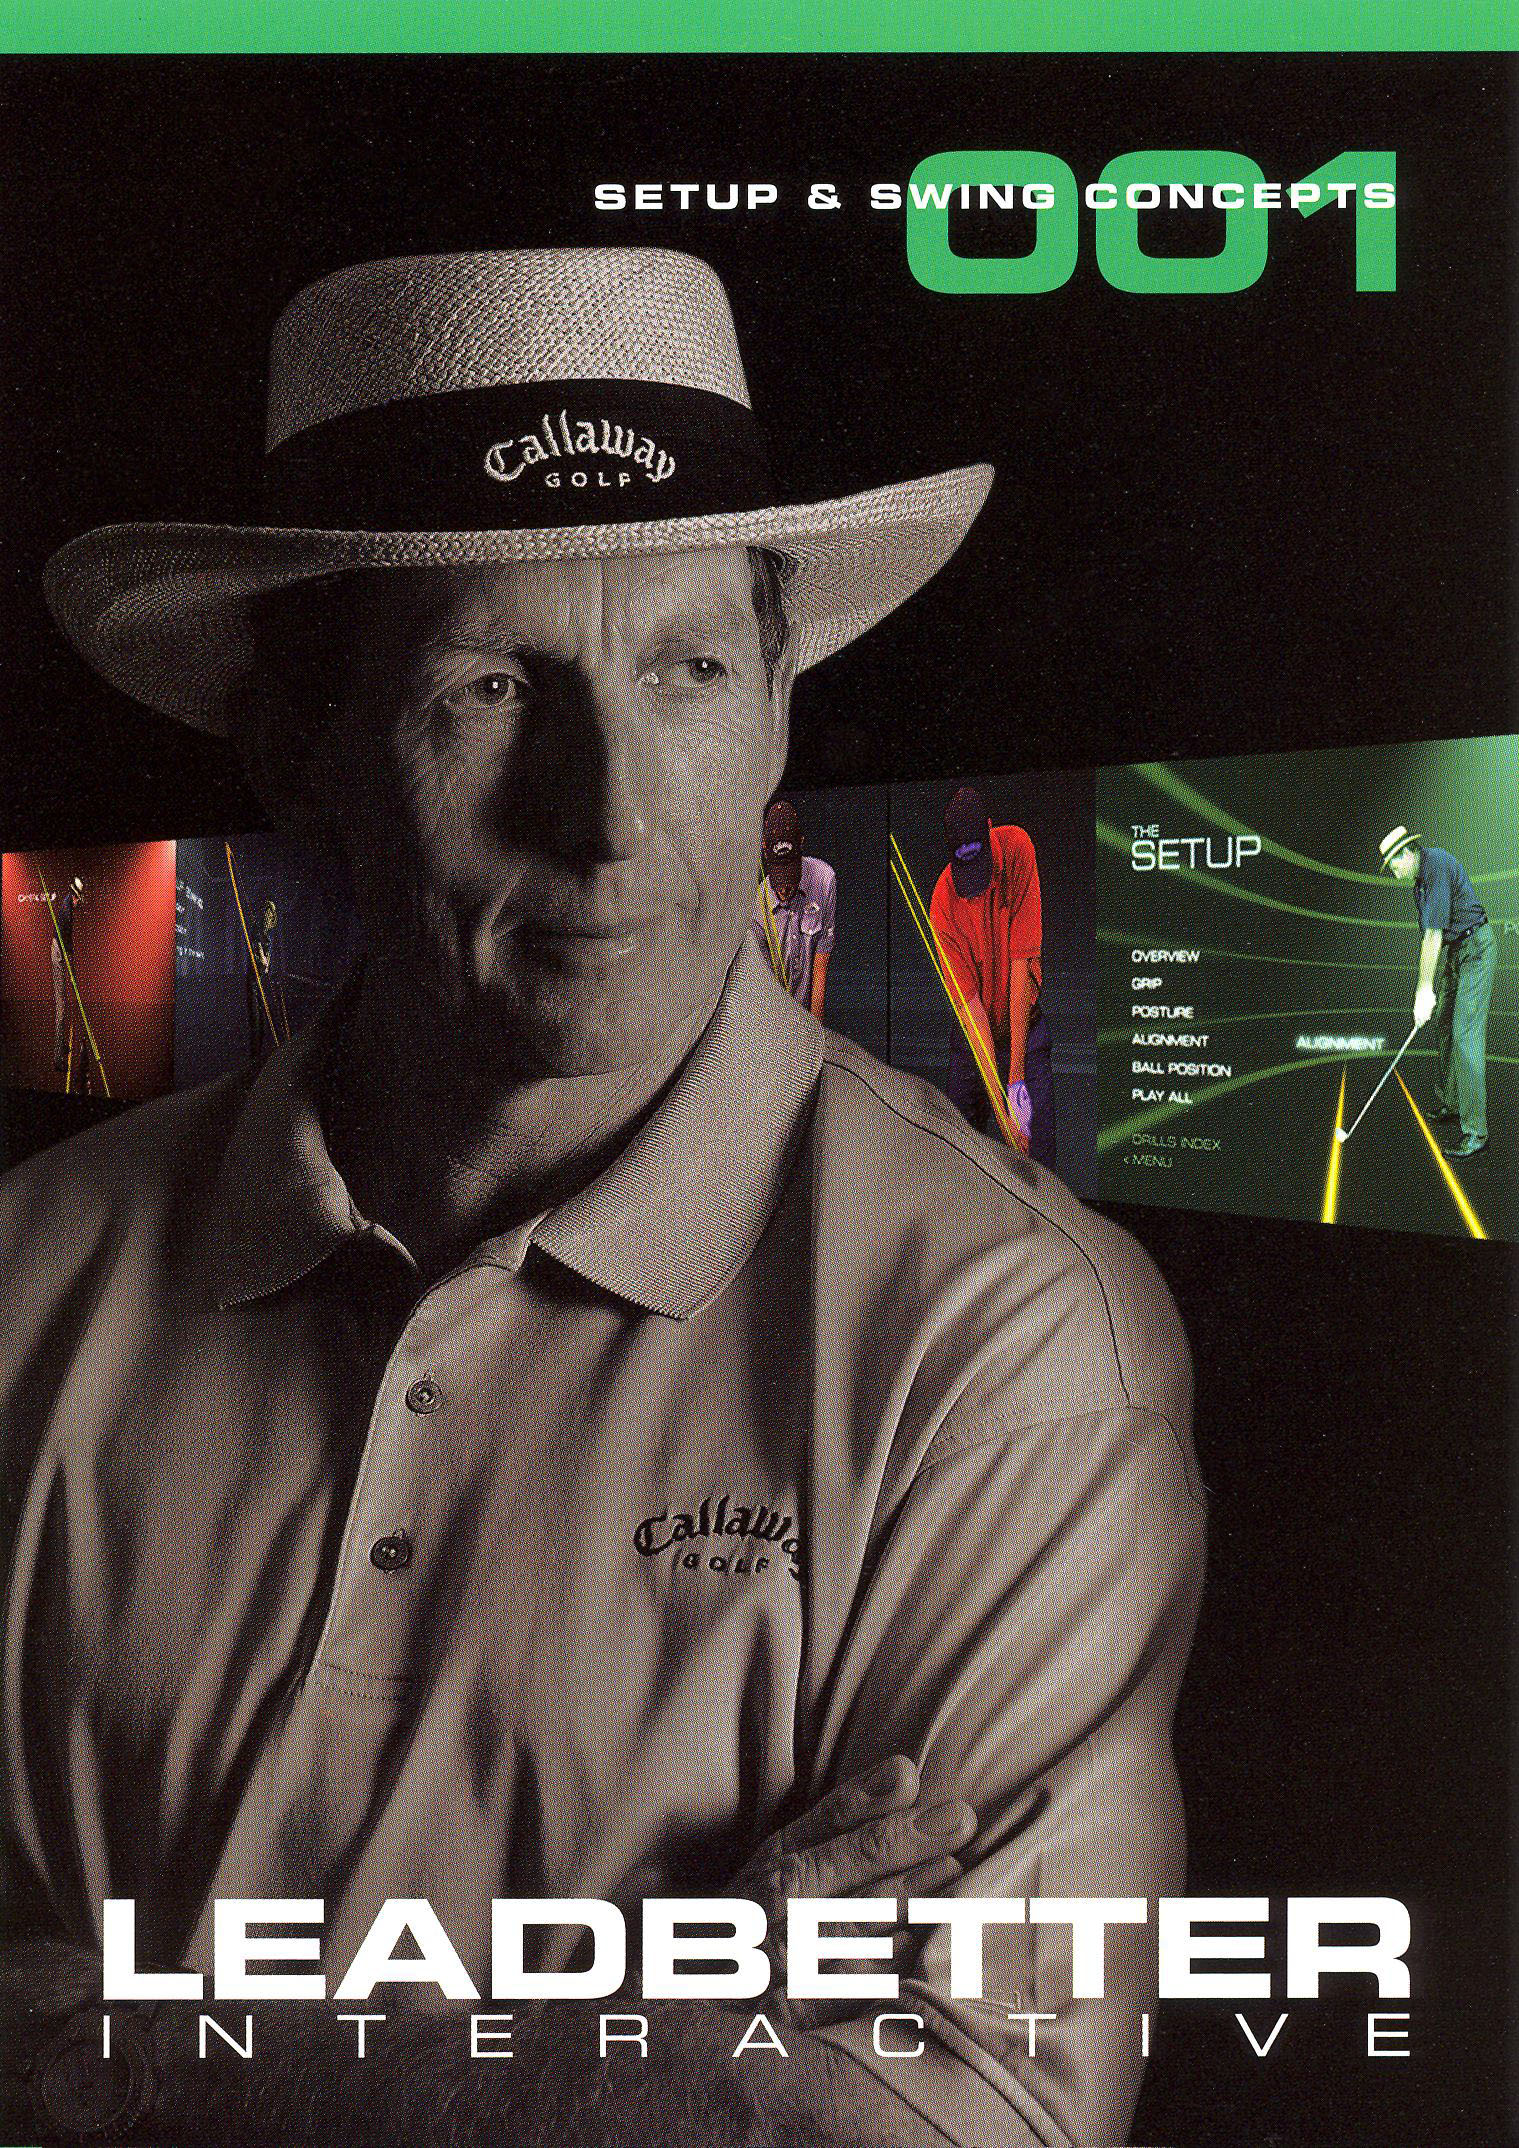 Leadbetter Interactive, Vol. 1: Setup and Swing Concepts